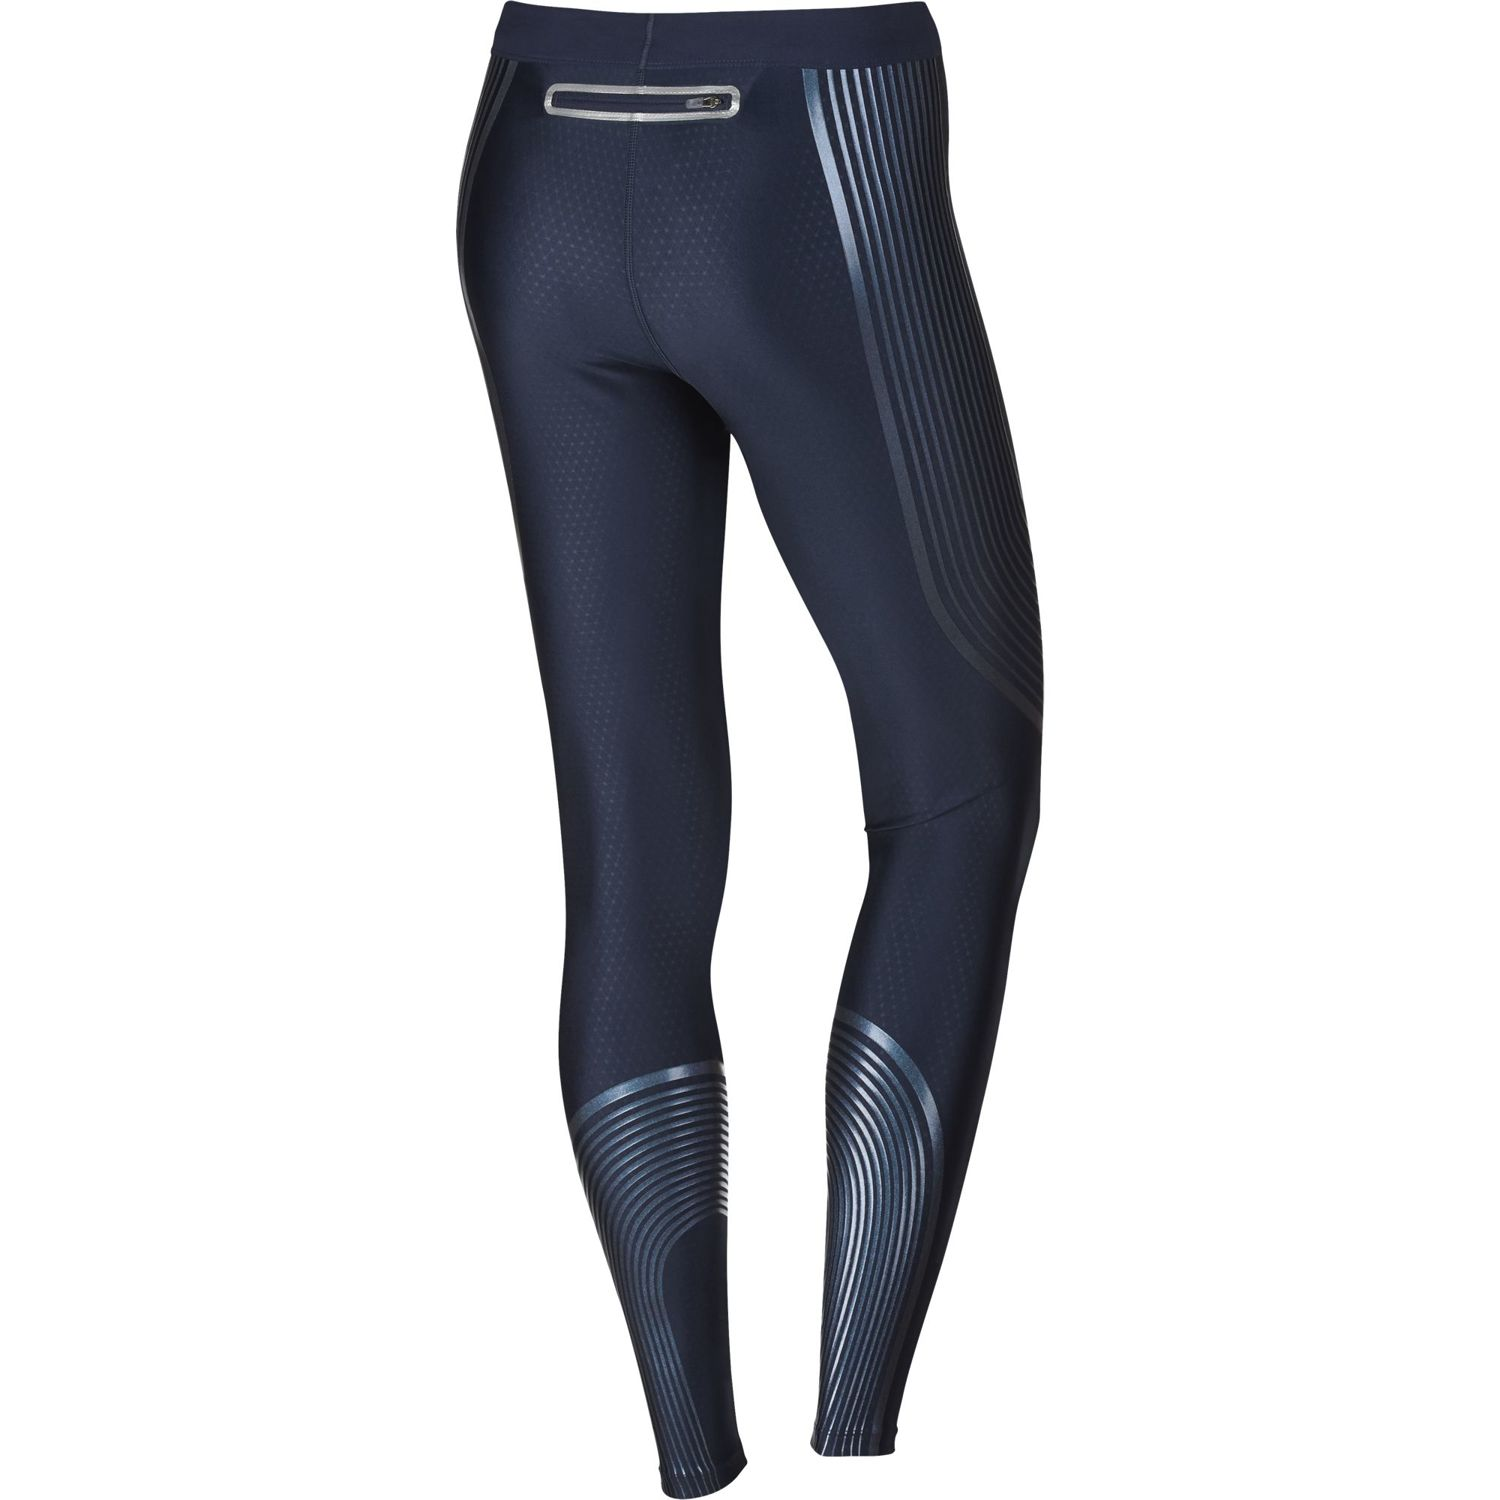 Legginsy sportowe Nike Power Speed 719784 411